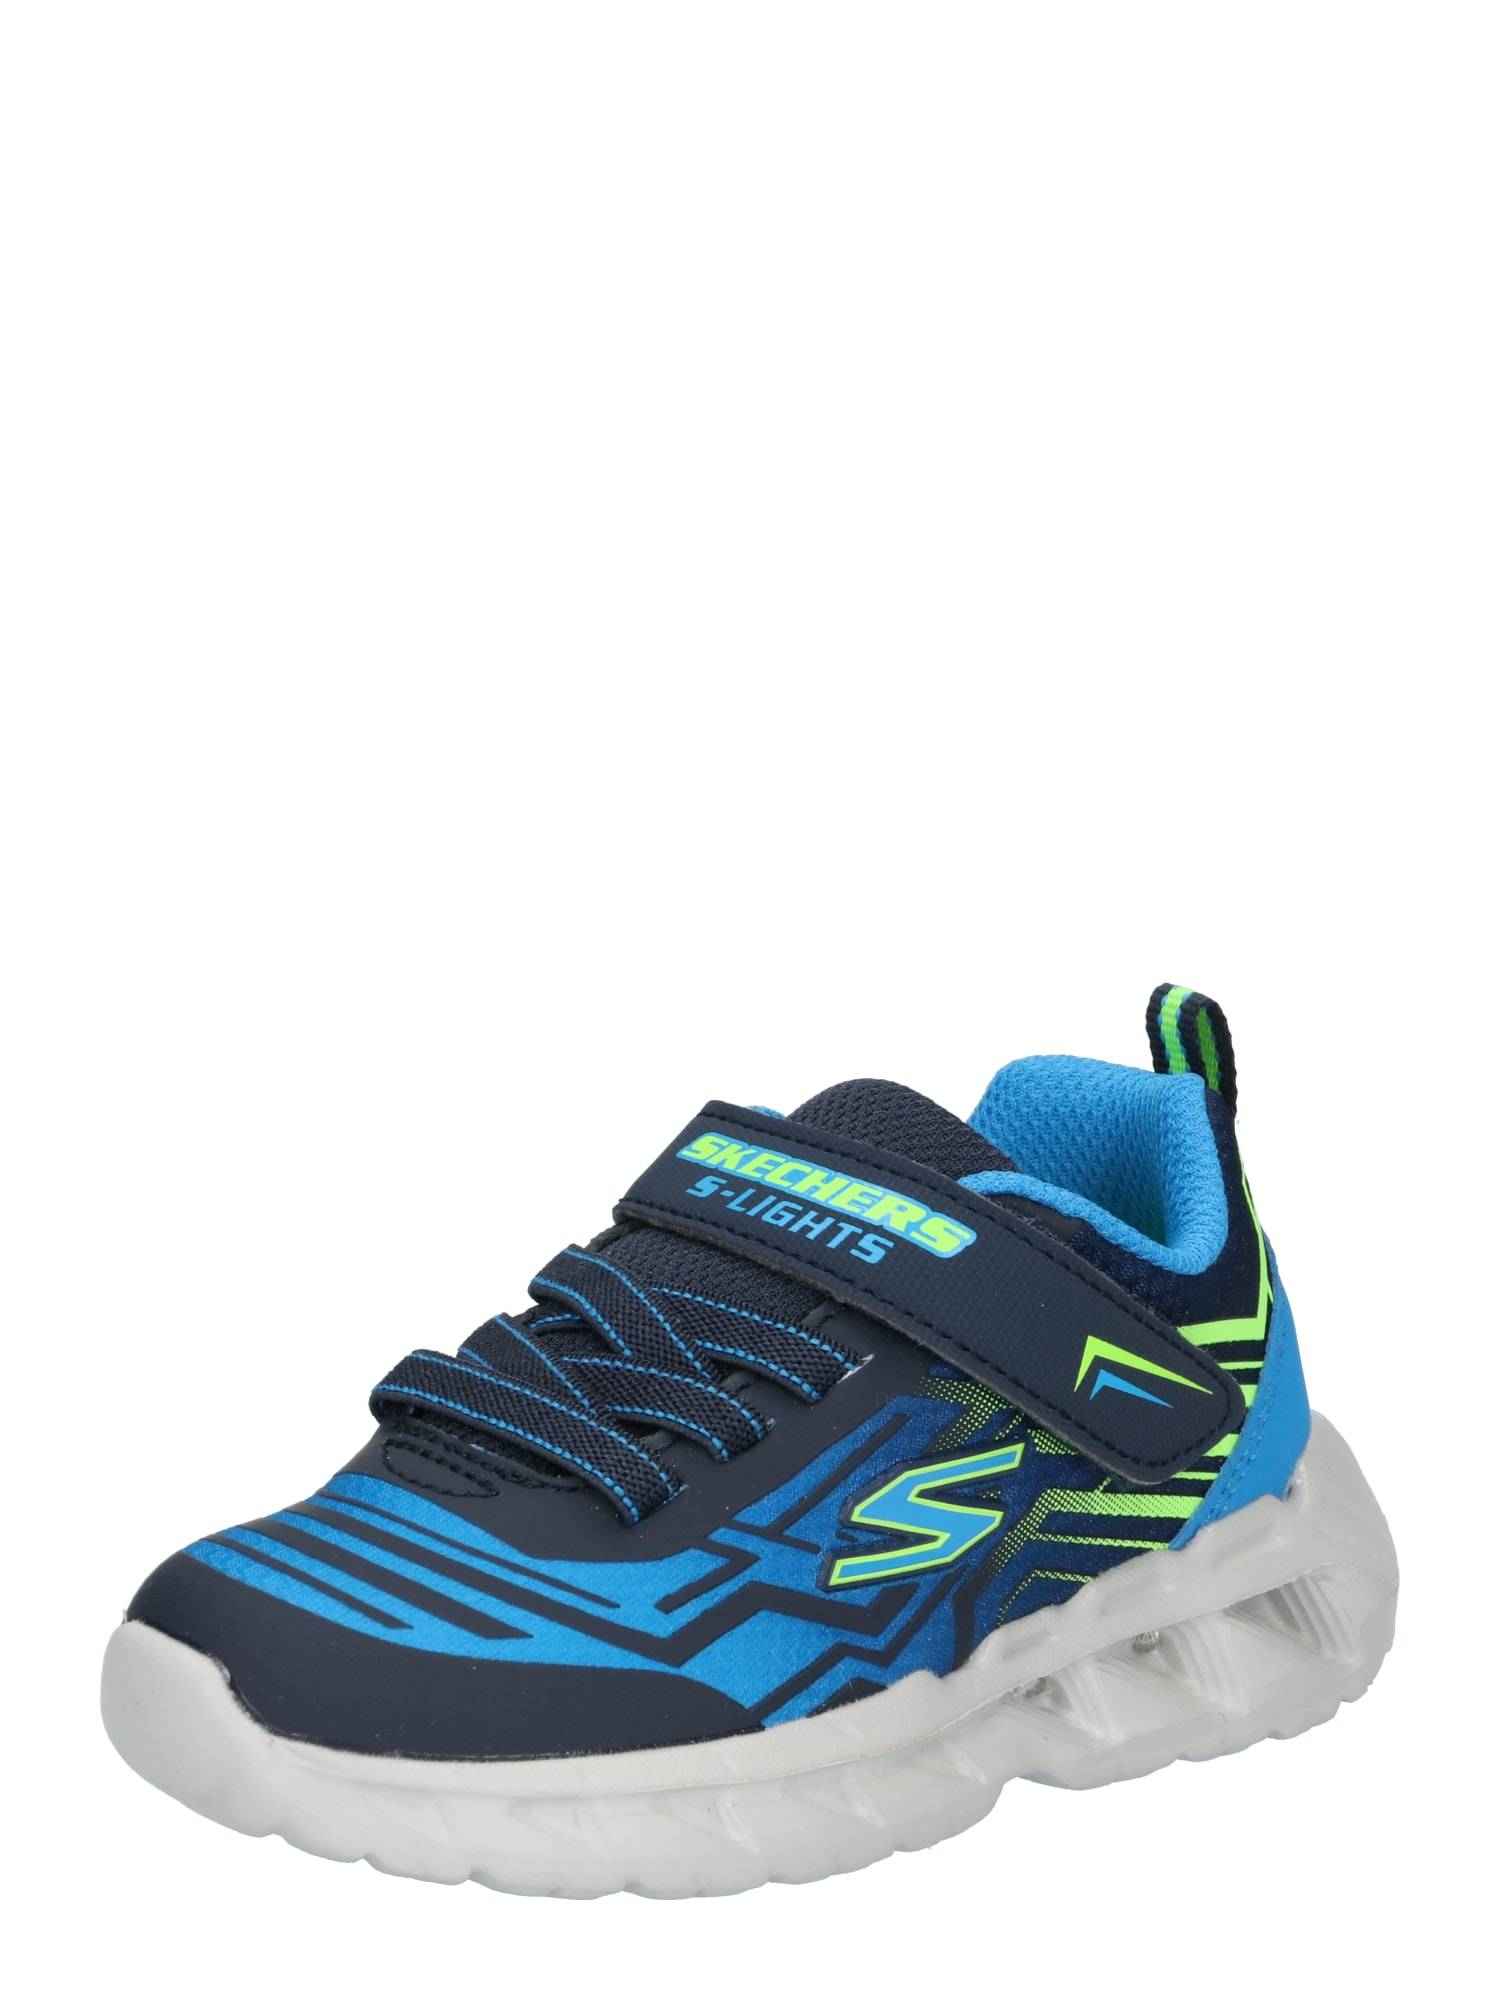 SKECHERS Baskets 'MAGNA-LIGHTS BOZLER'  - Bleu - Taille: 26 - boy